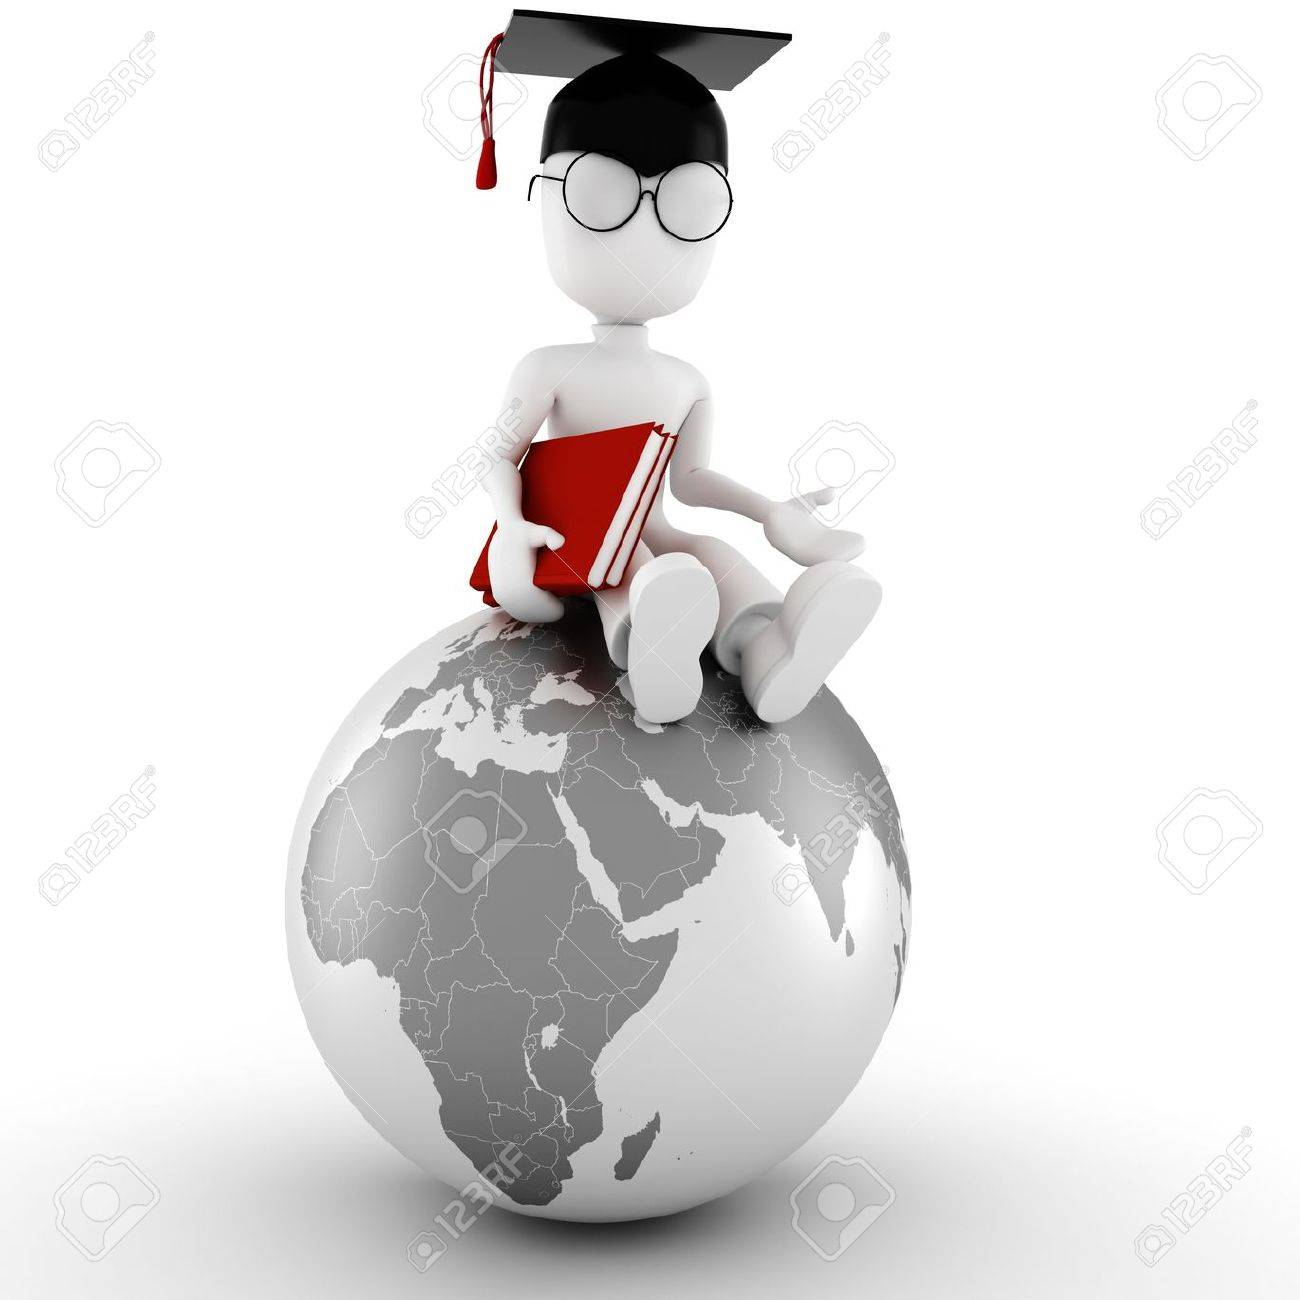 College Lifestyle Archives   Abstract Daily SlideShare